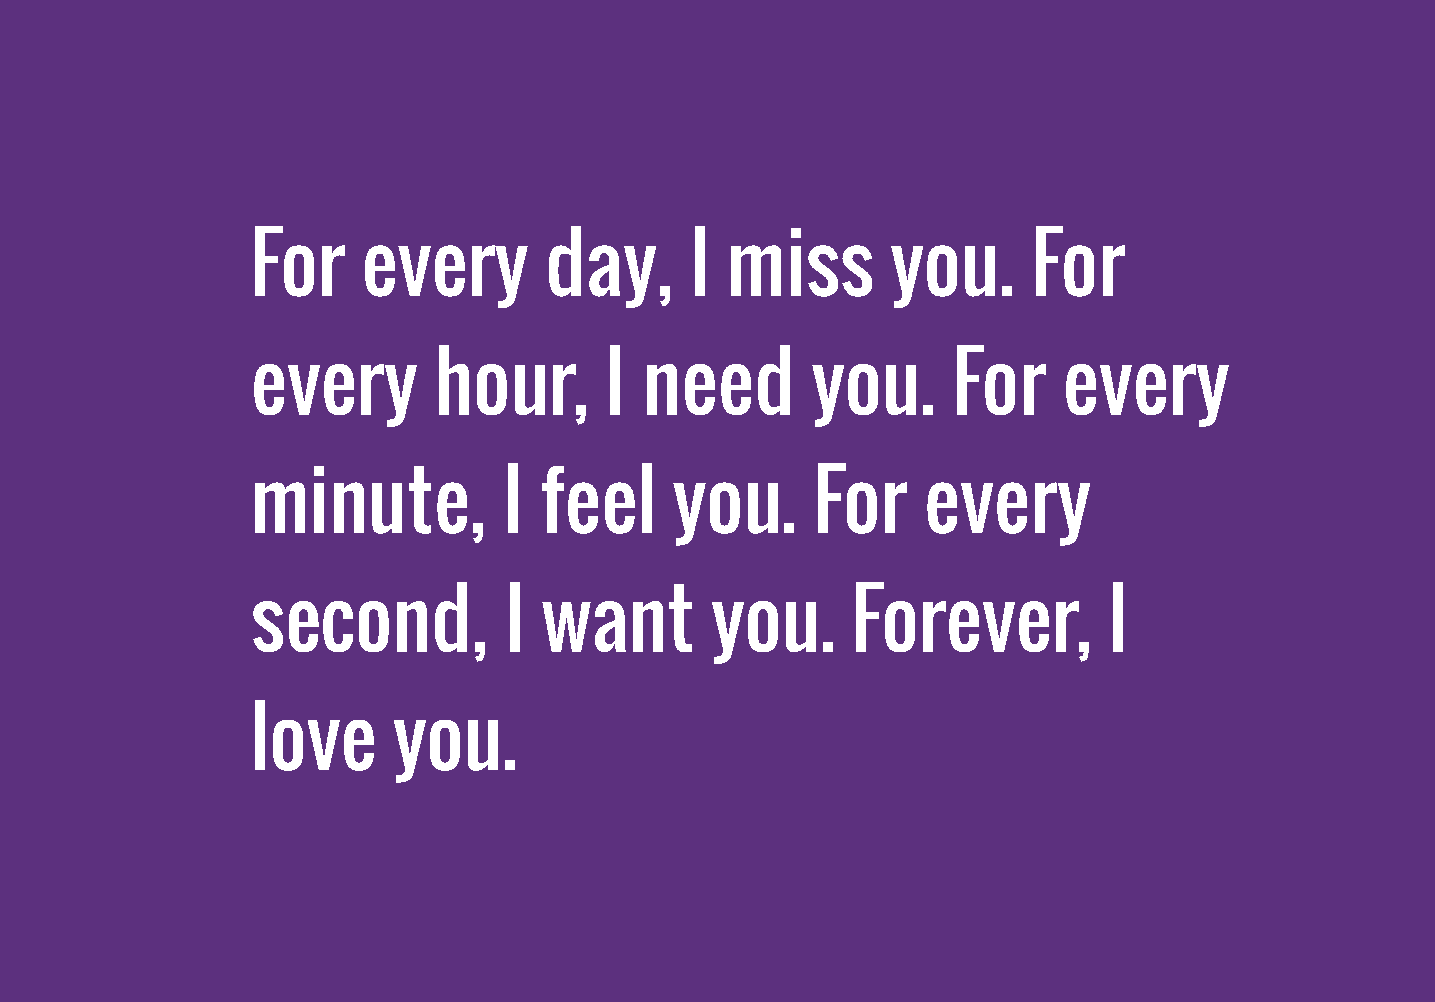 Love You Quotes For Him Meme Image 03